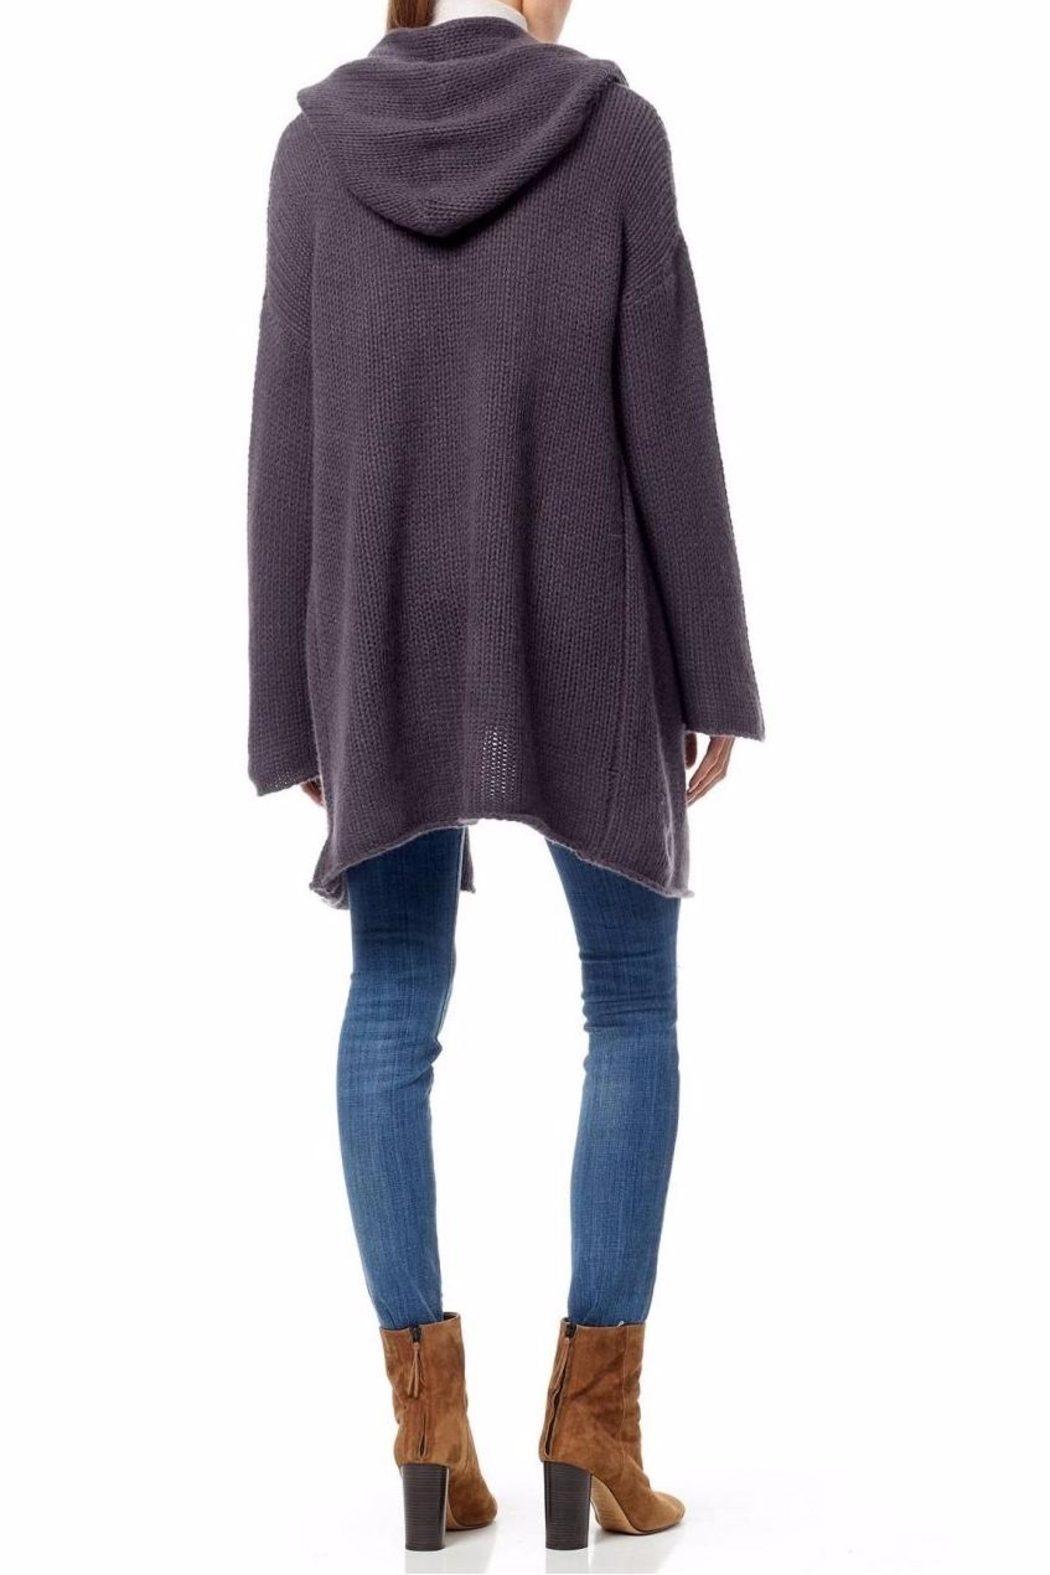 360 Cashmere Chunky Knit Cardigan - Side Cropped Image